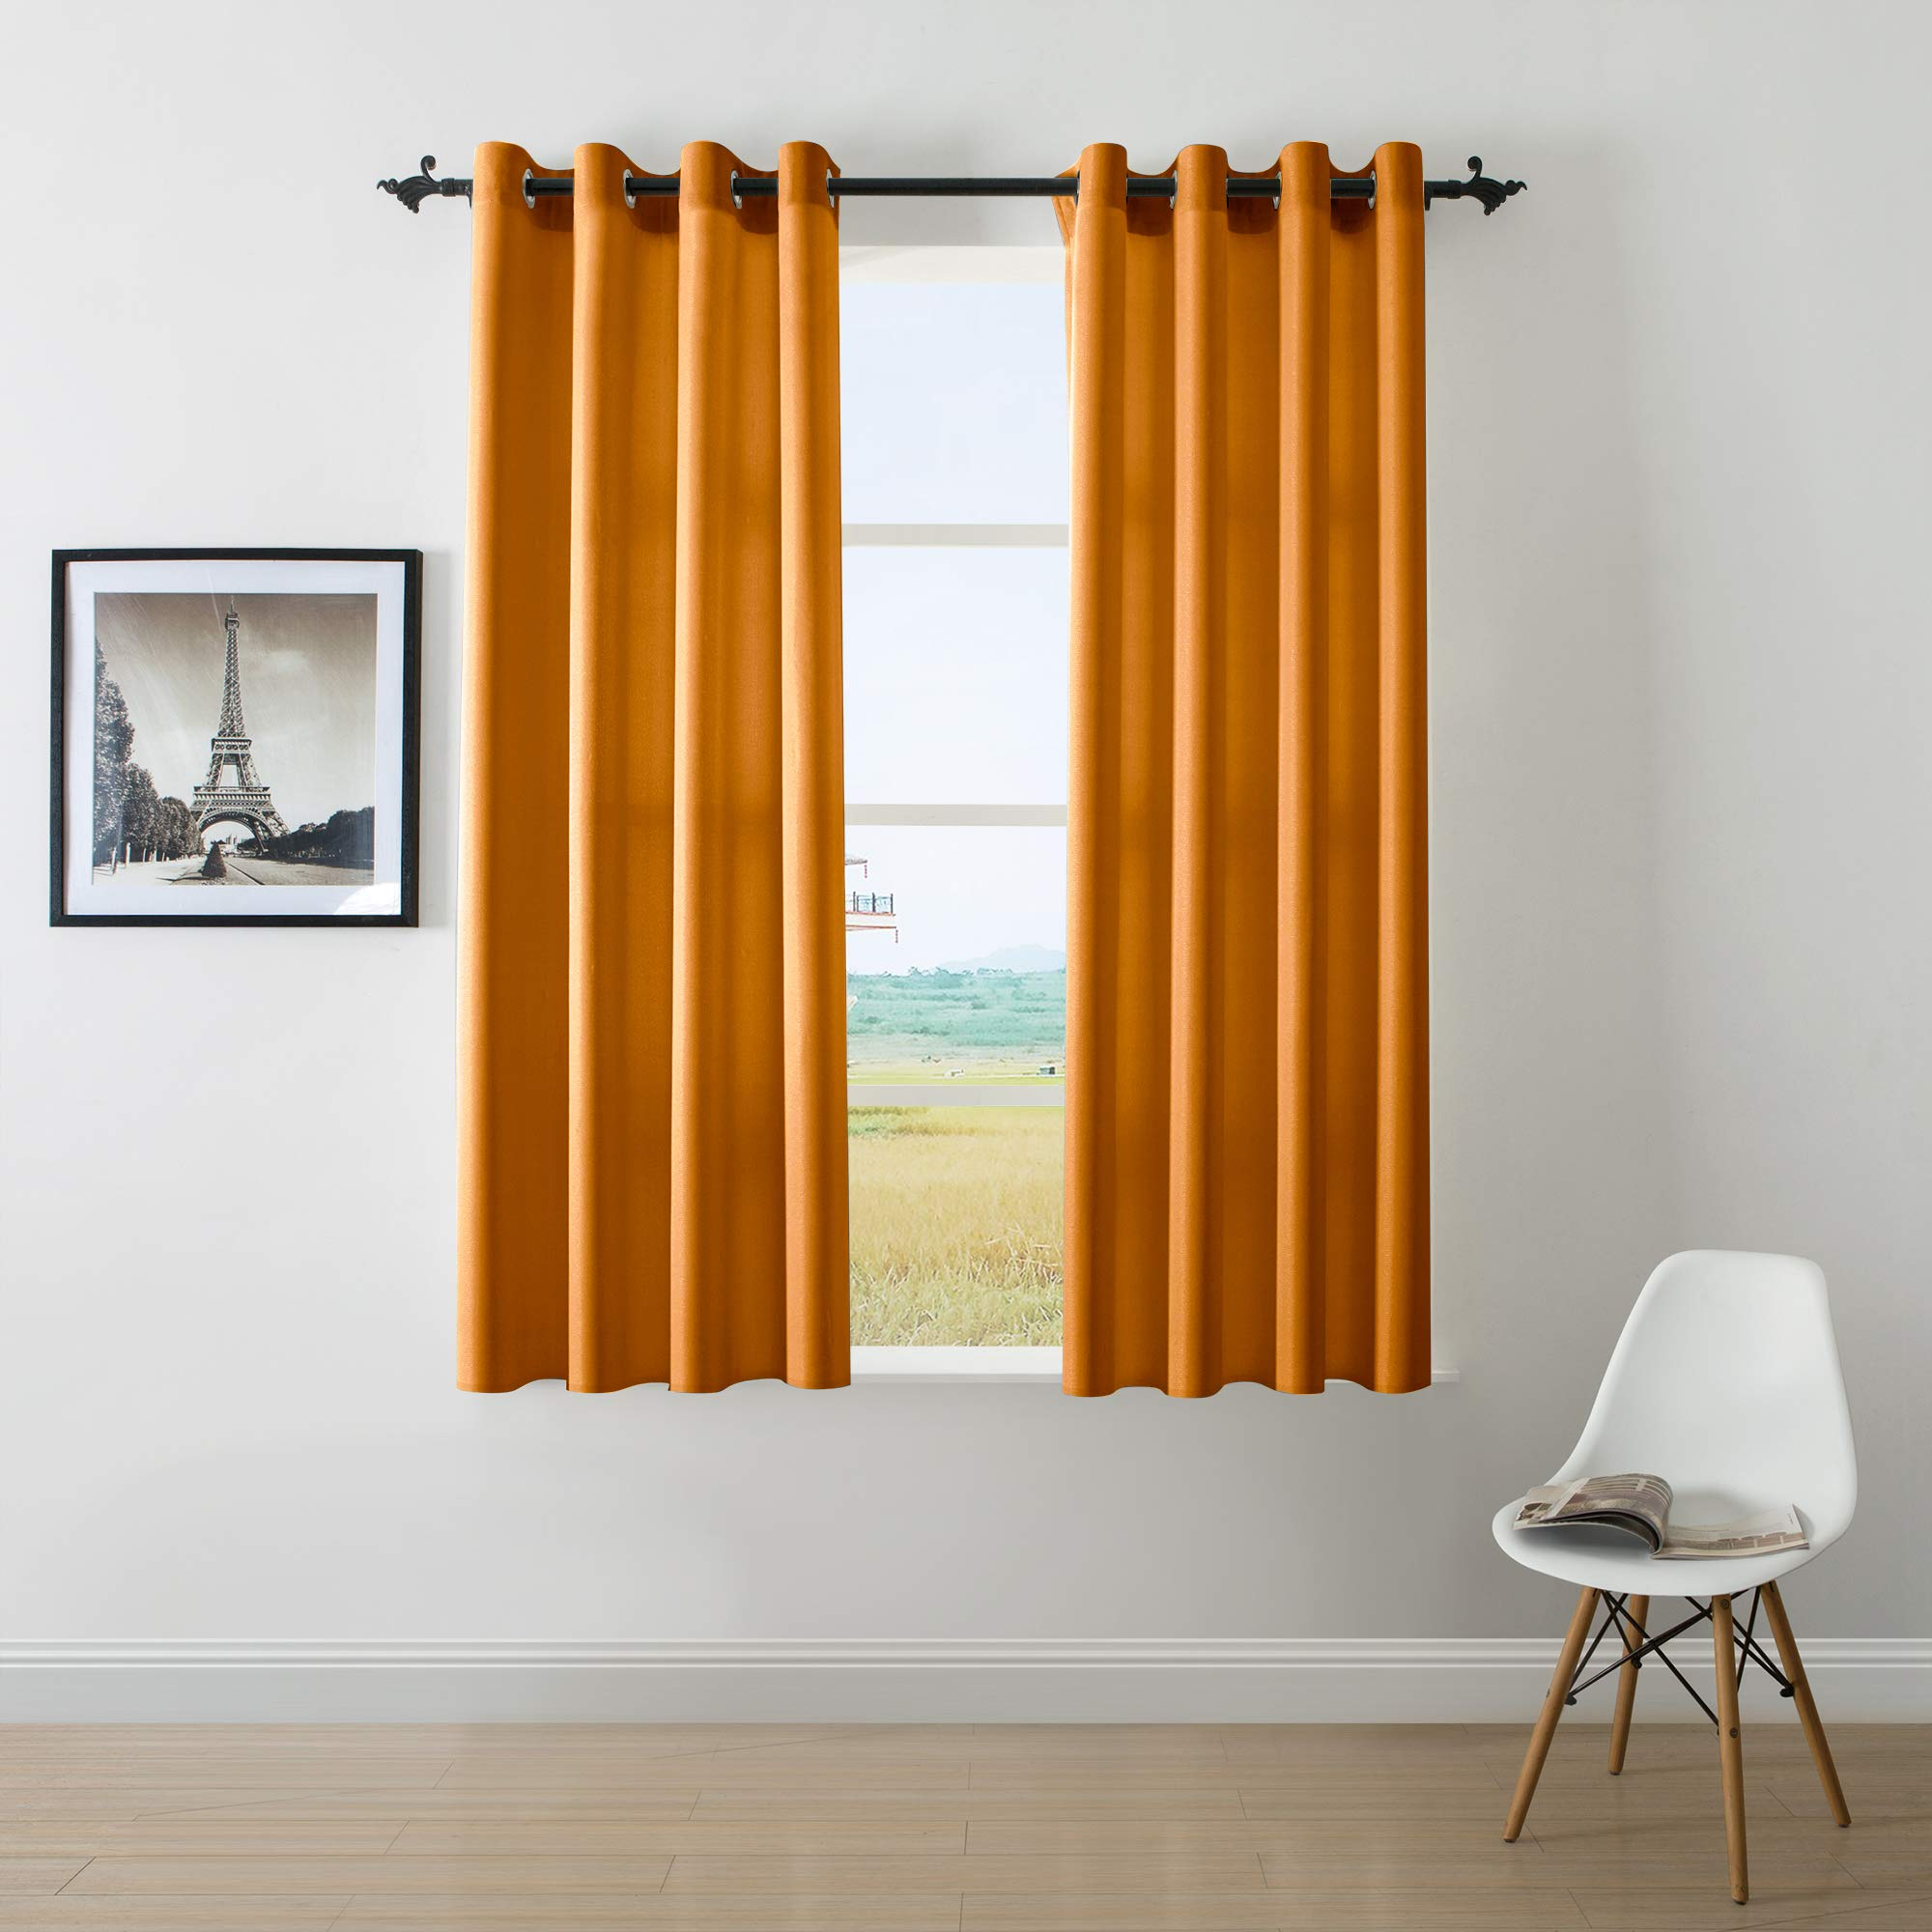 DWCN Semi Sheer Curtains Sunlight Filtering Country Modern Style Draperies 8 Grommets Window Orange Curtain 52x63 inch Long Set of 2 Faux Linen Panels for Living Room